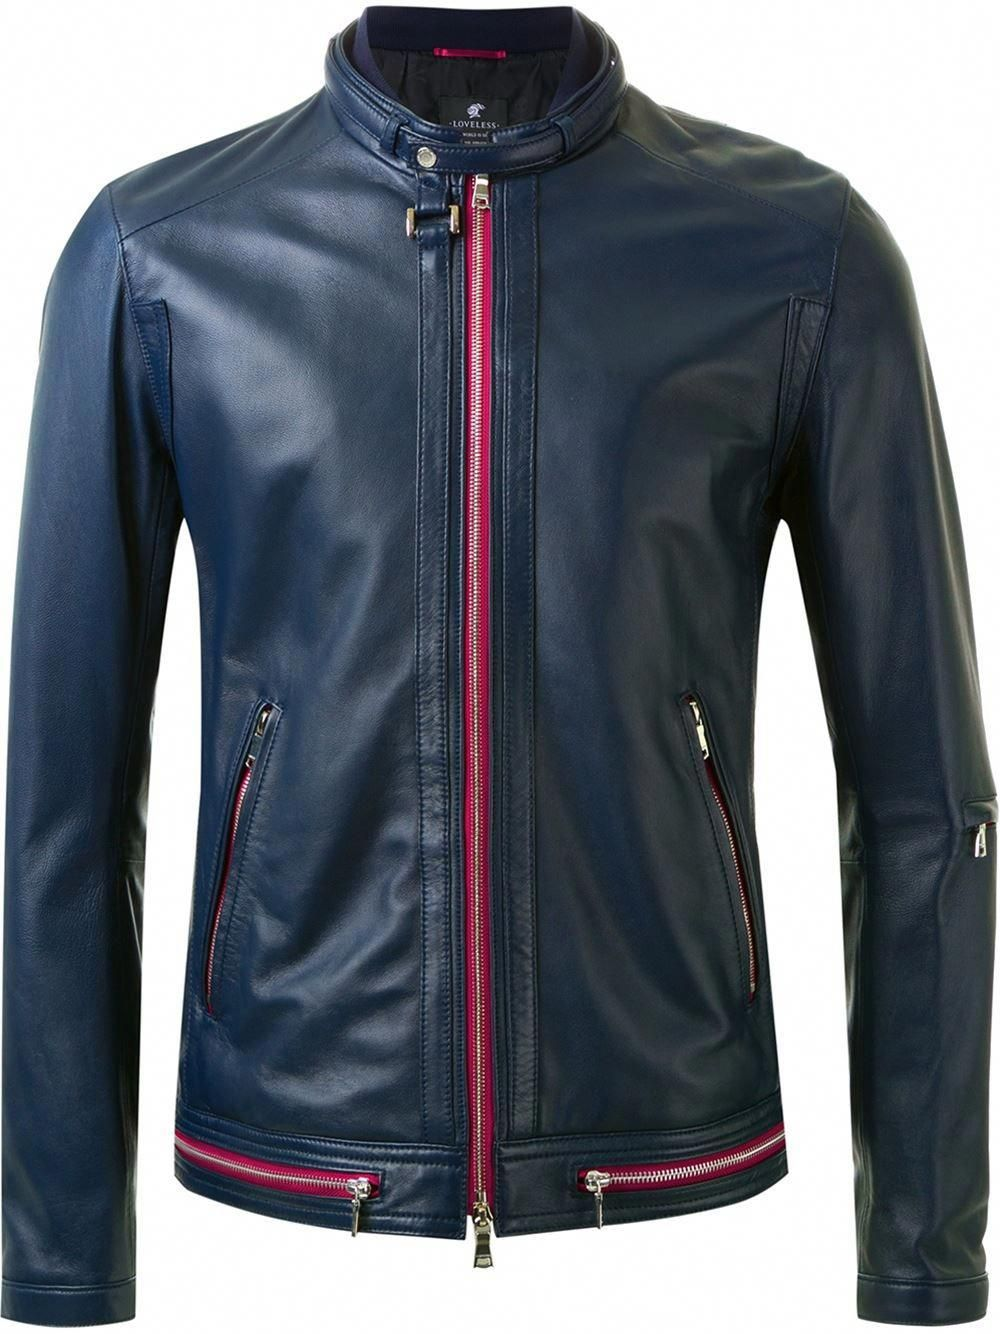 fd8b61ec79af LOVELESS Navy Blue Lambskin Zip Jacket from Farfetch #LeatherJacket  #LOVELESS #Farfetch #leatherjacketsformenblue